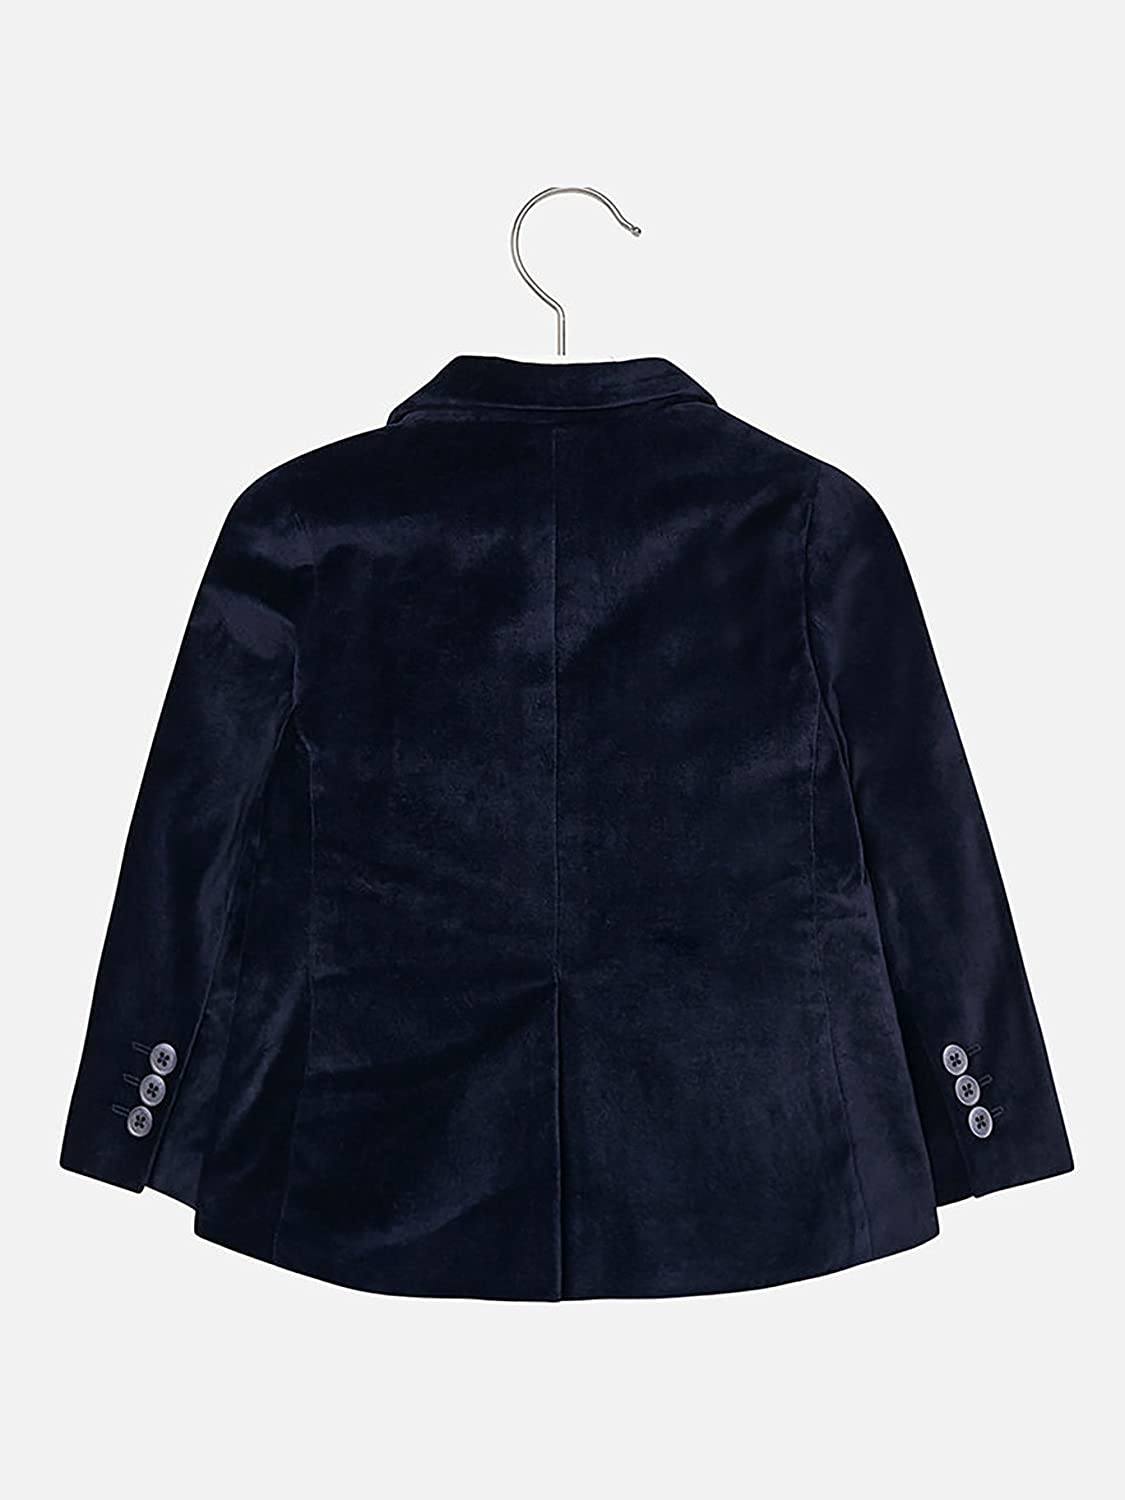 Jacket for Girls 4478 Mayoral Navy